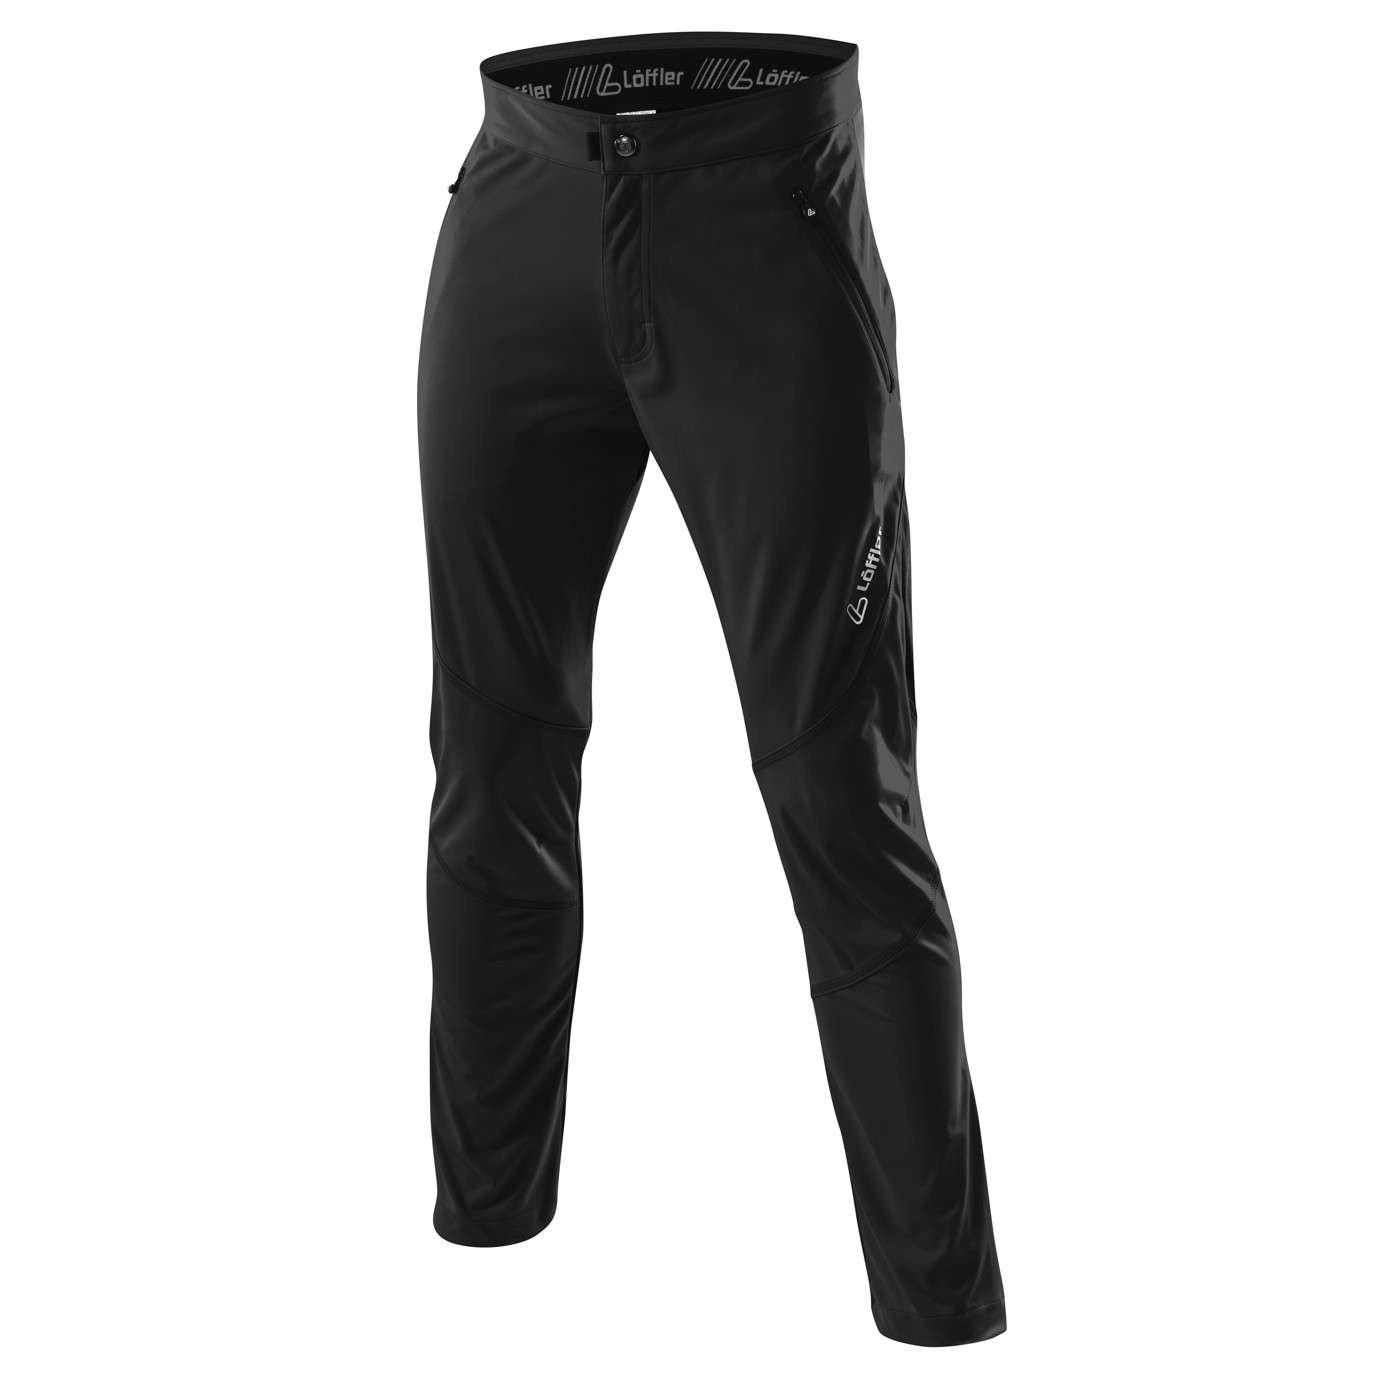 LÖFFLER M PANTS ELEGANCE WS LIGHT - Herren